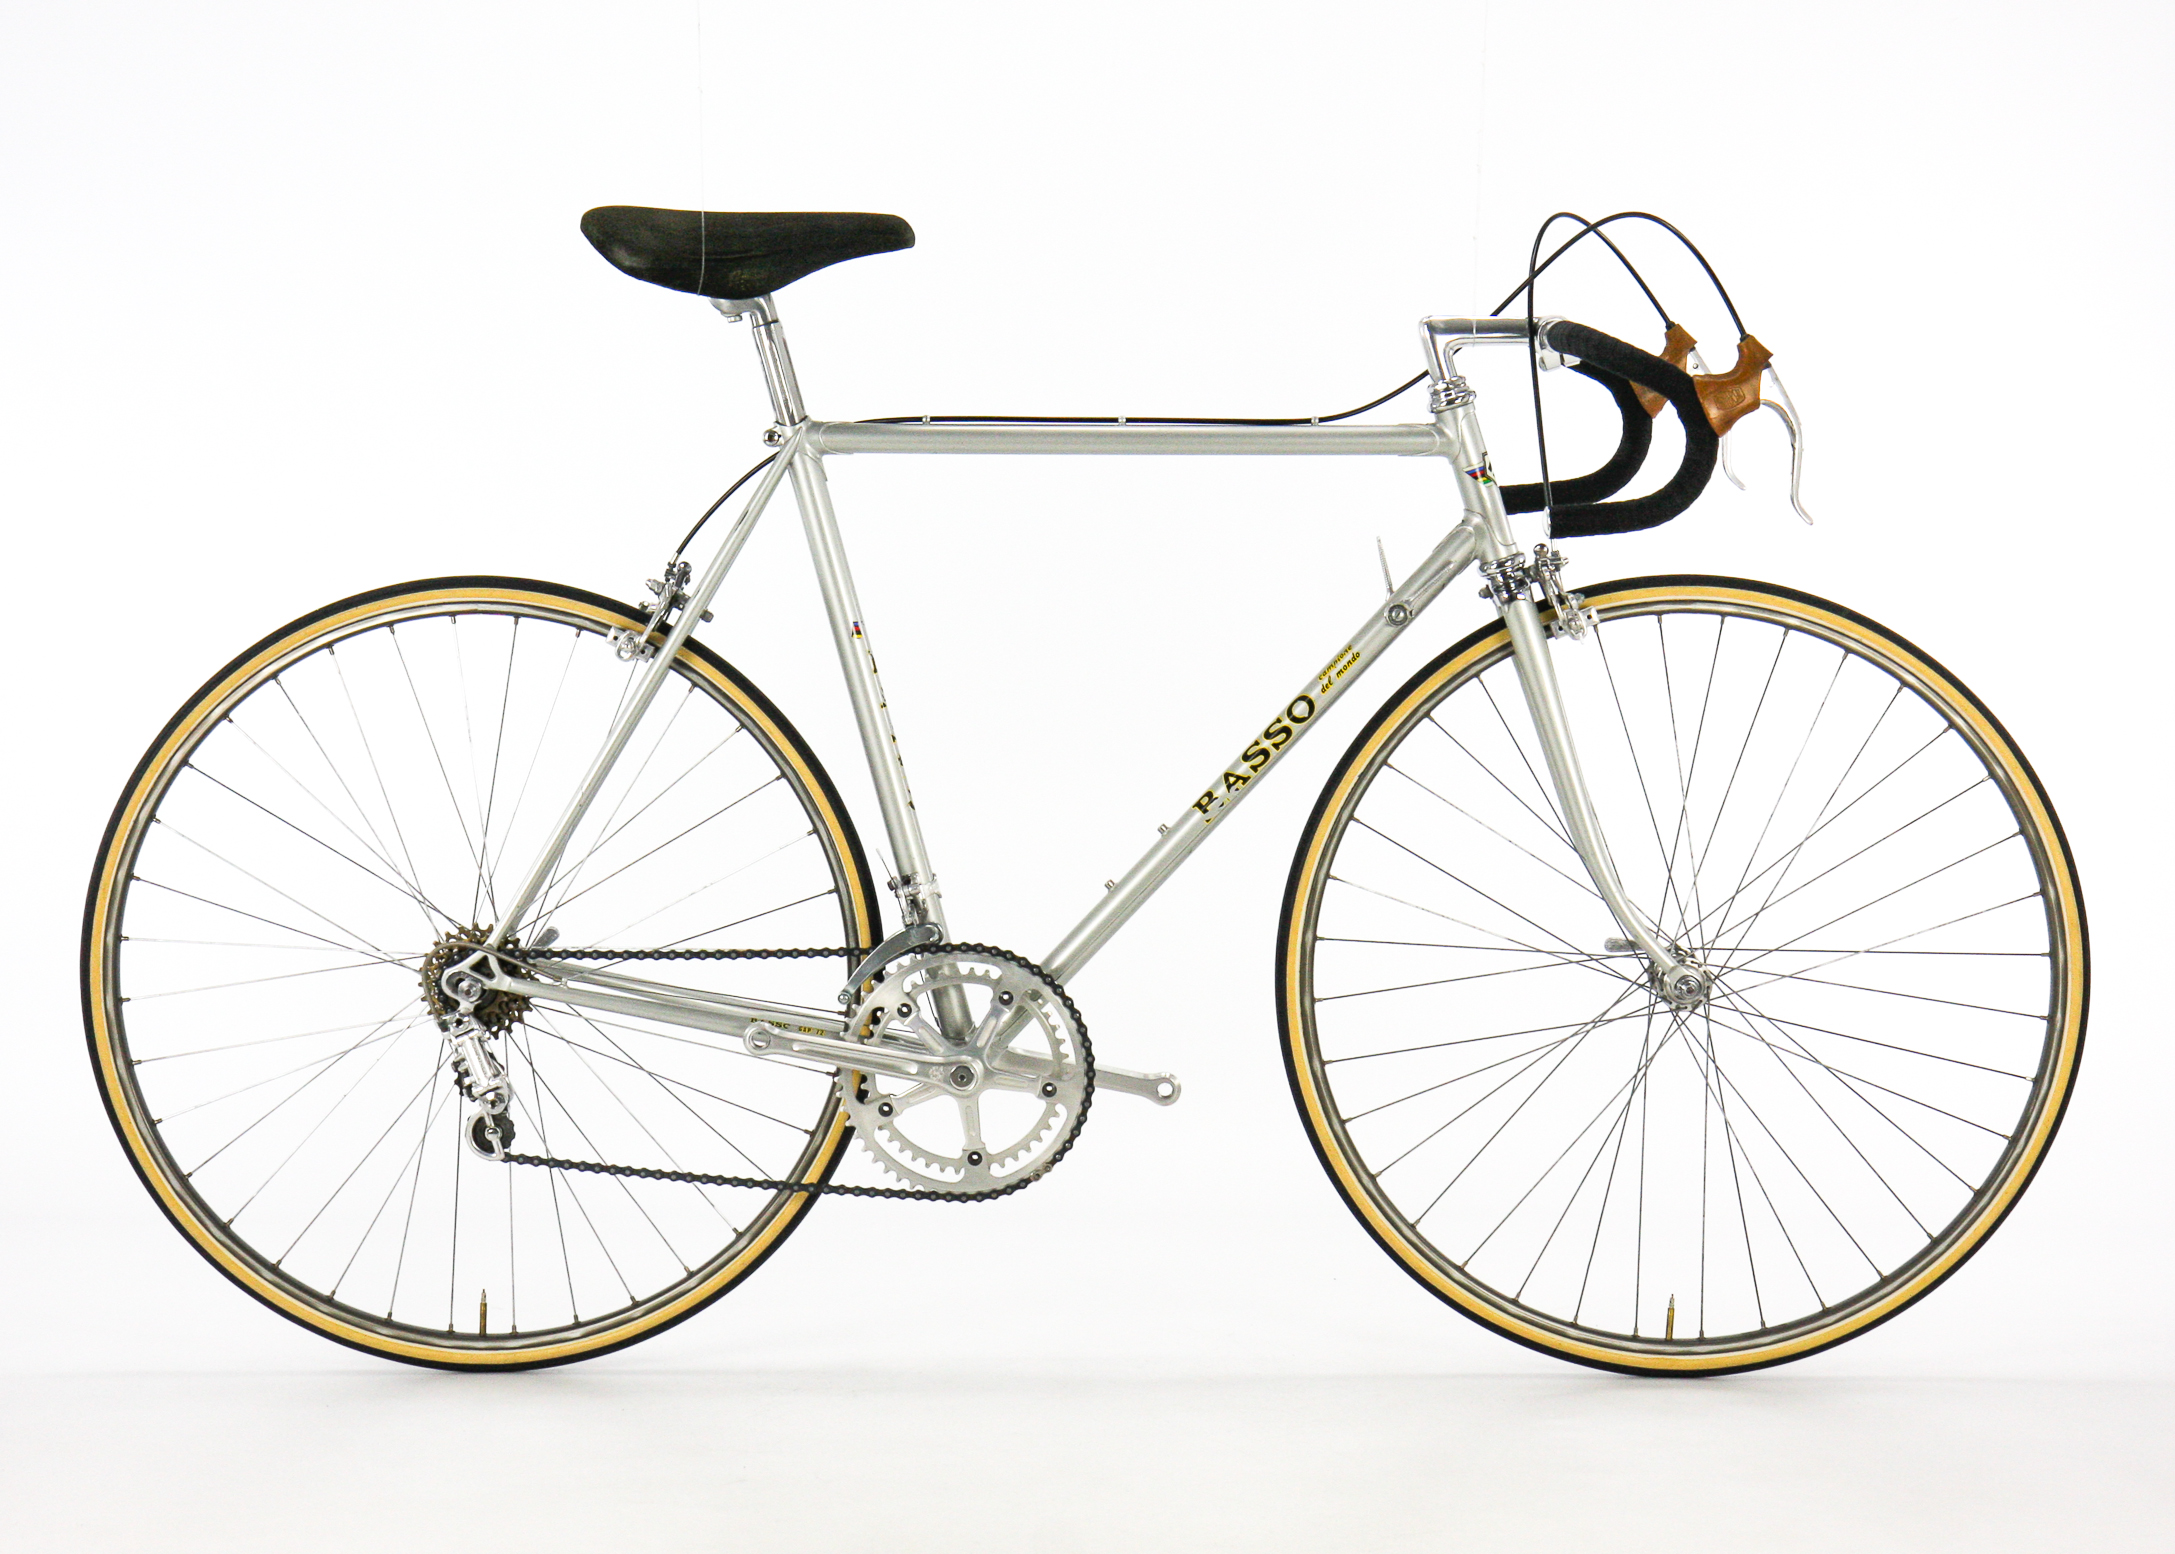 Basso Gap 72 Classic Road Bike